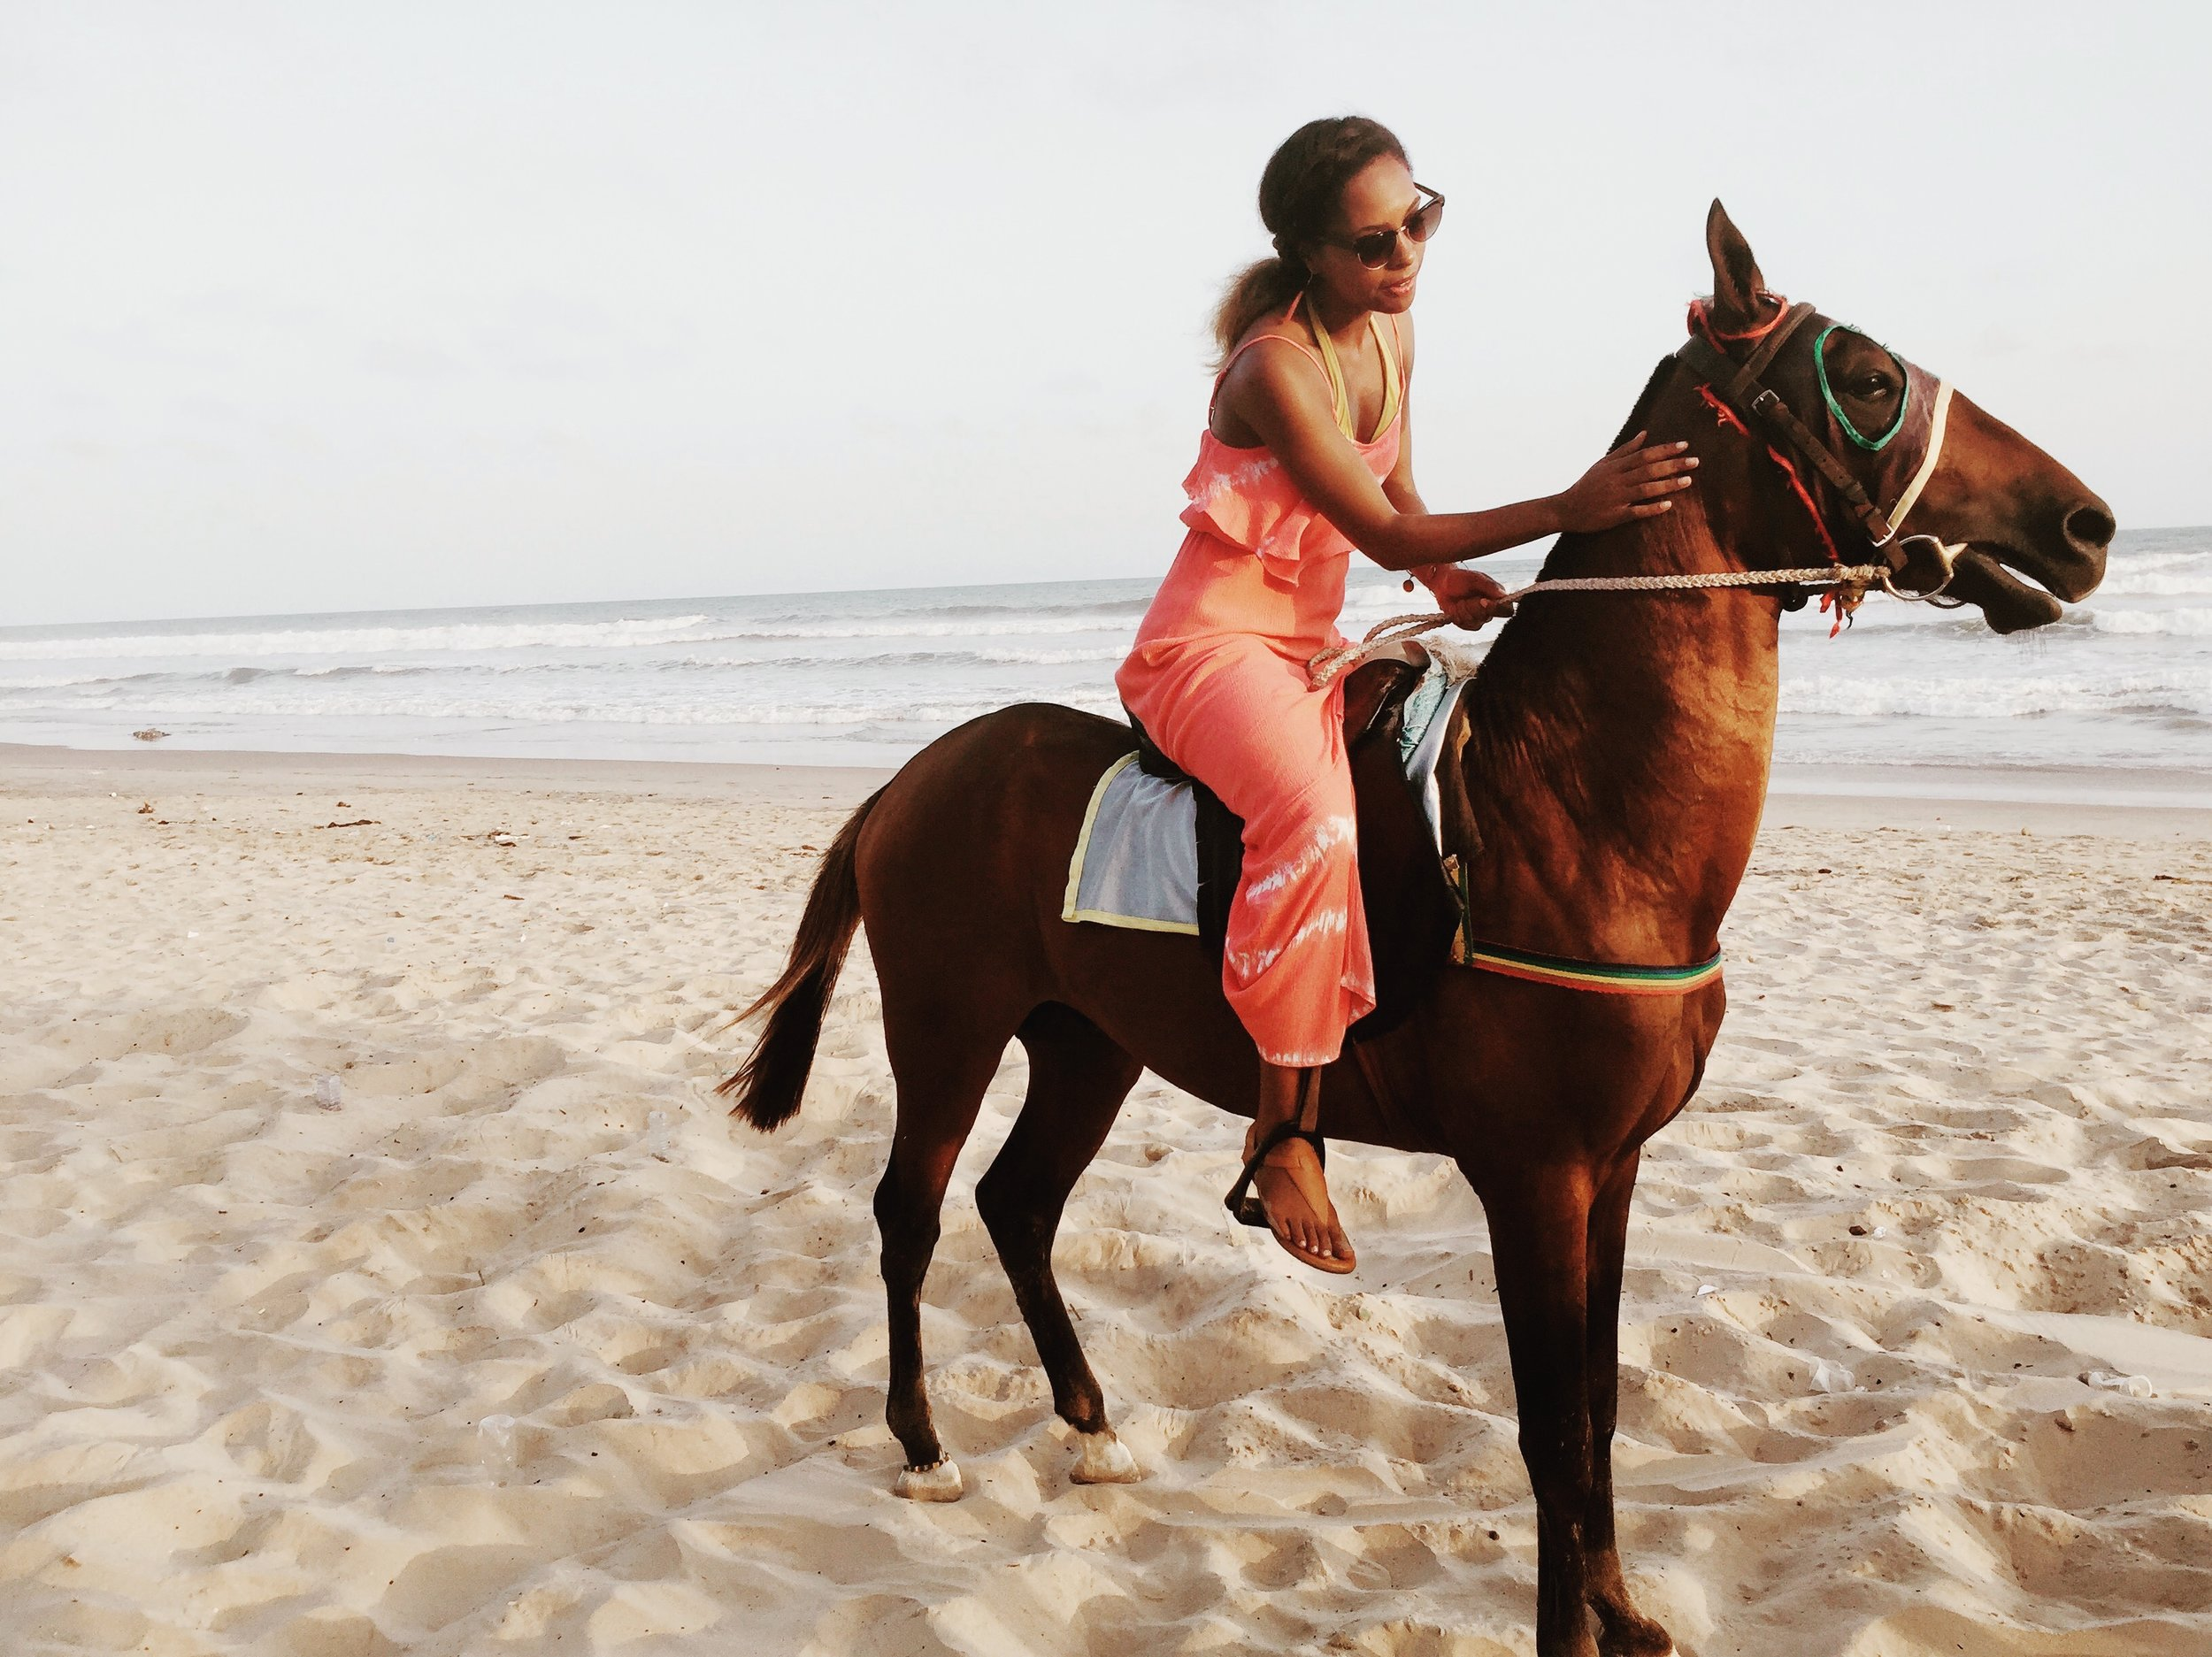 My first time going horseback riding on a beach. This was at the Labadi Beach Hotel in Ghana.